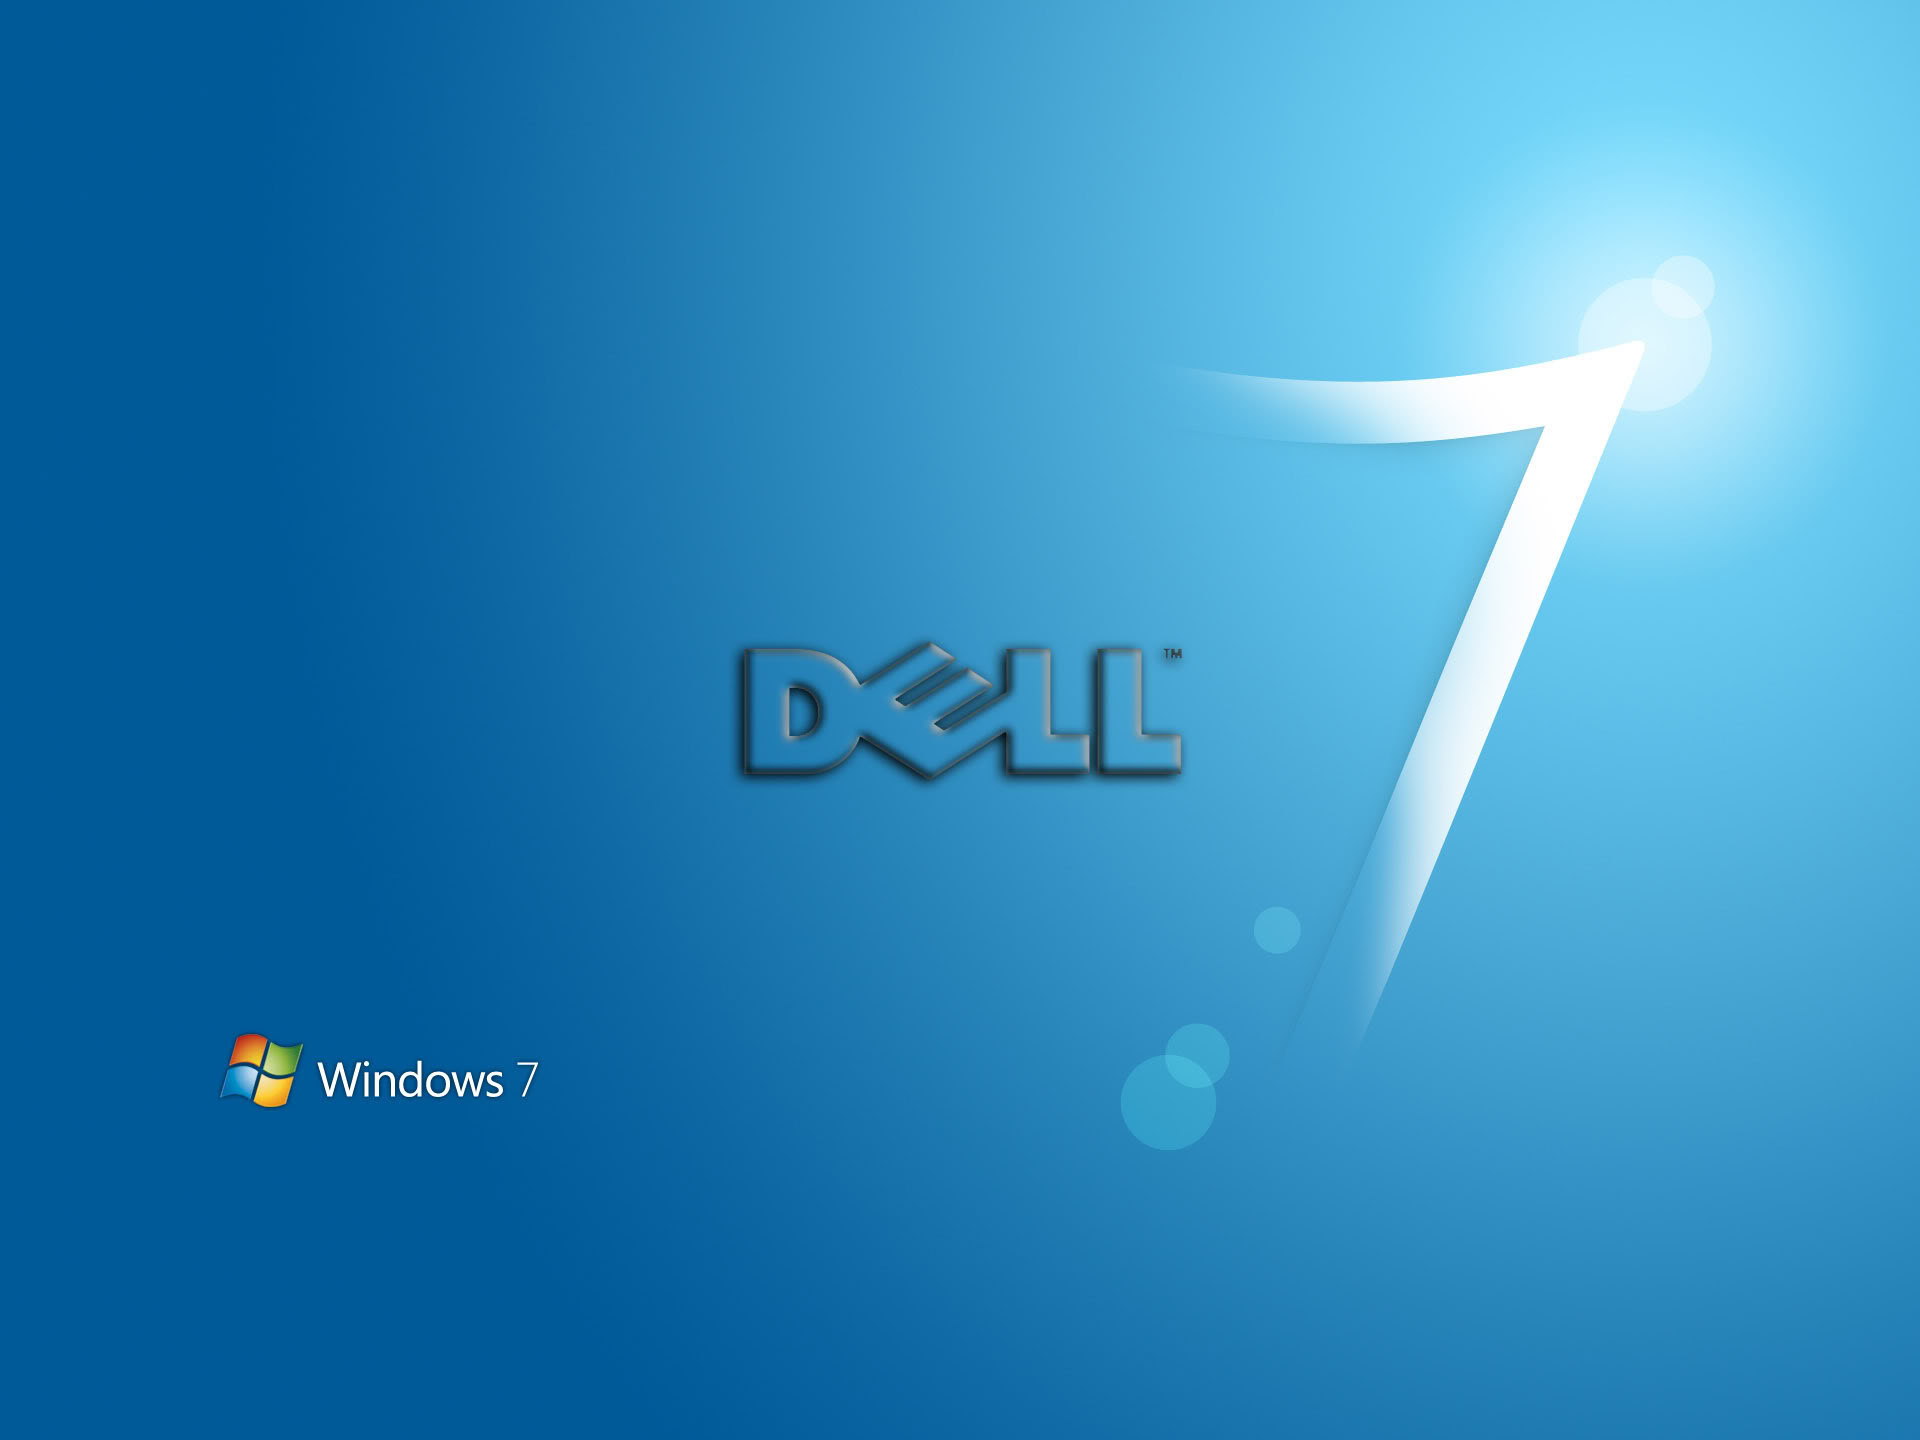 Dell-PC-Doctor-Ardee-%C3%97-Desktop-Backgrounds-For-wallpaper-wpc5804002